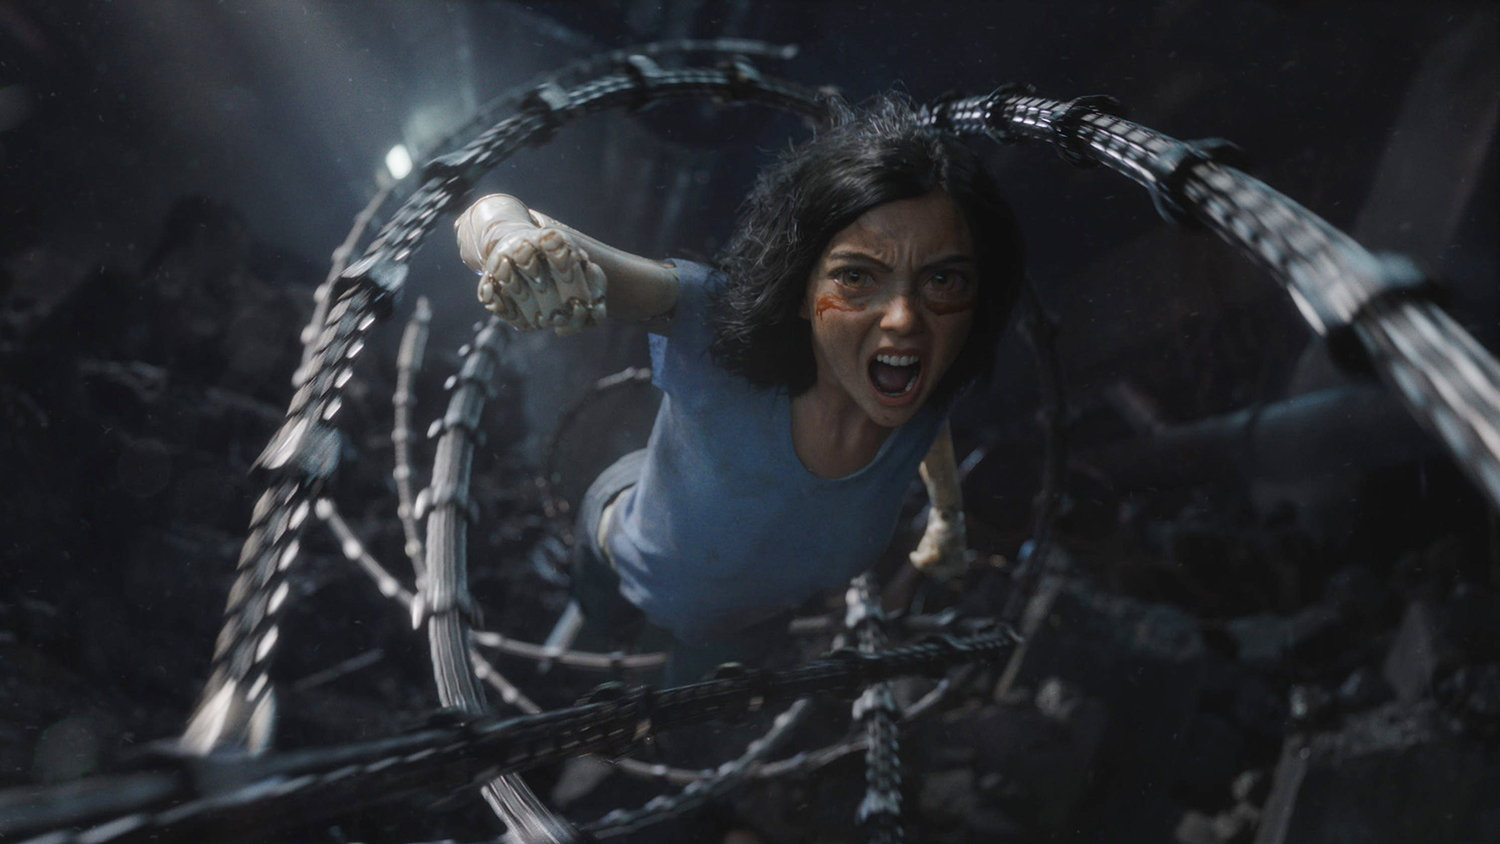 alita battle angel film still, best movie so far